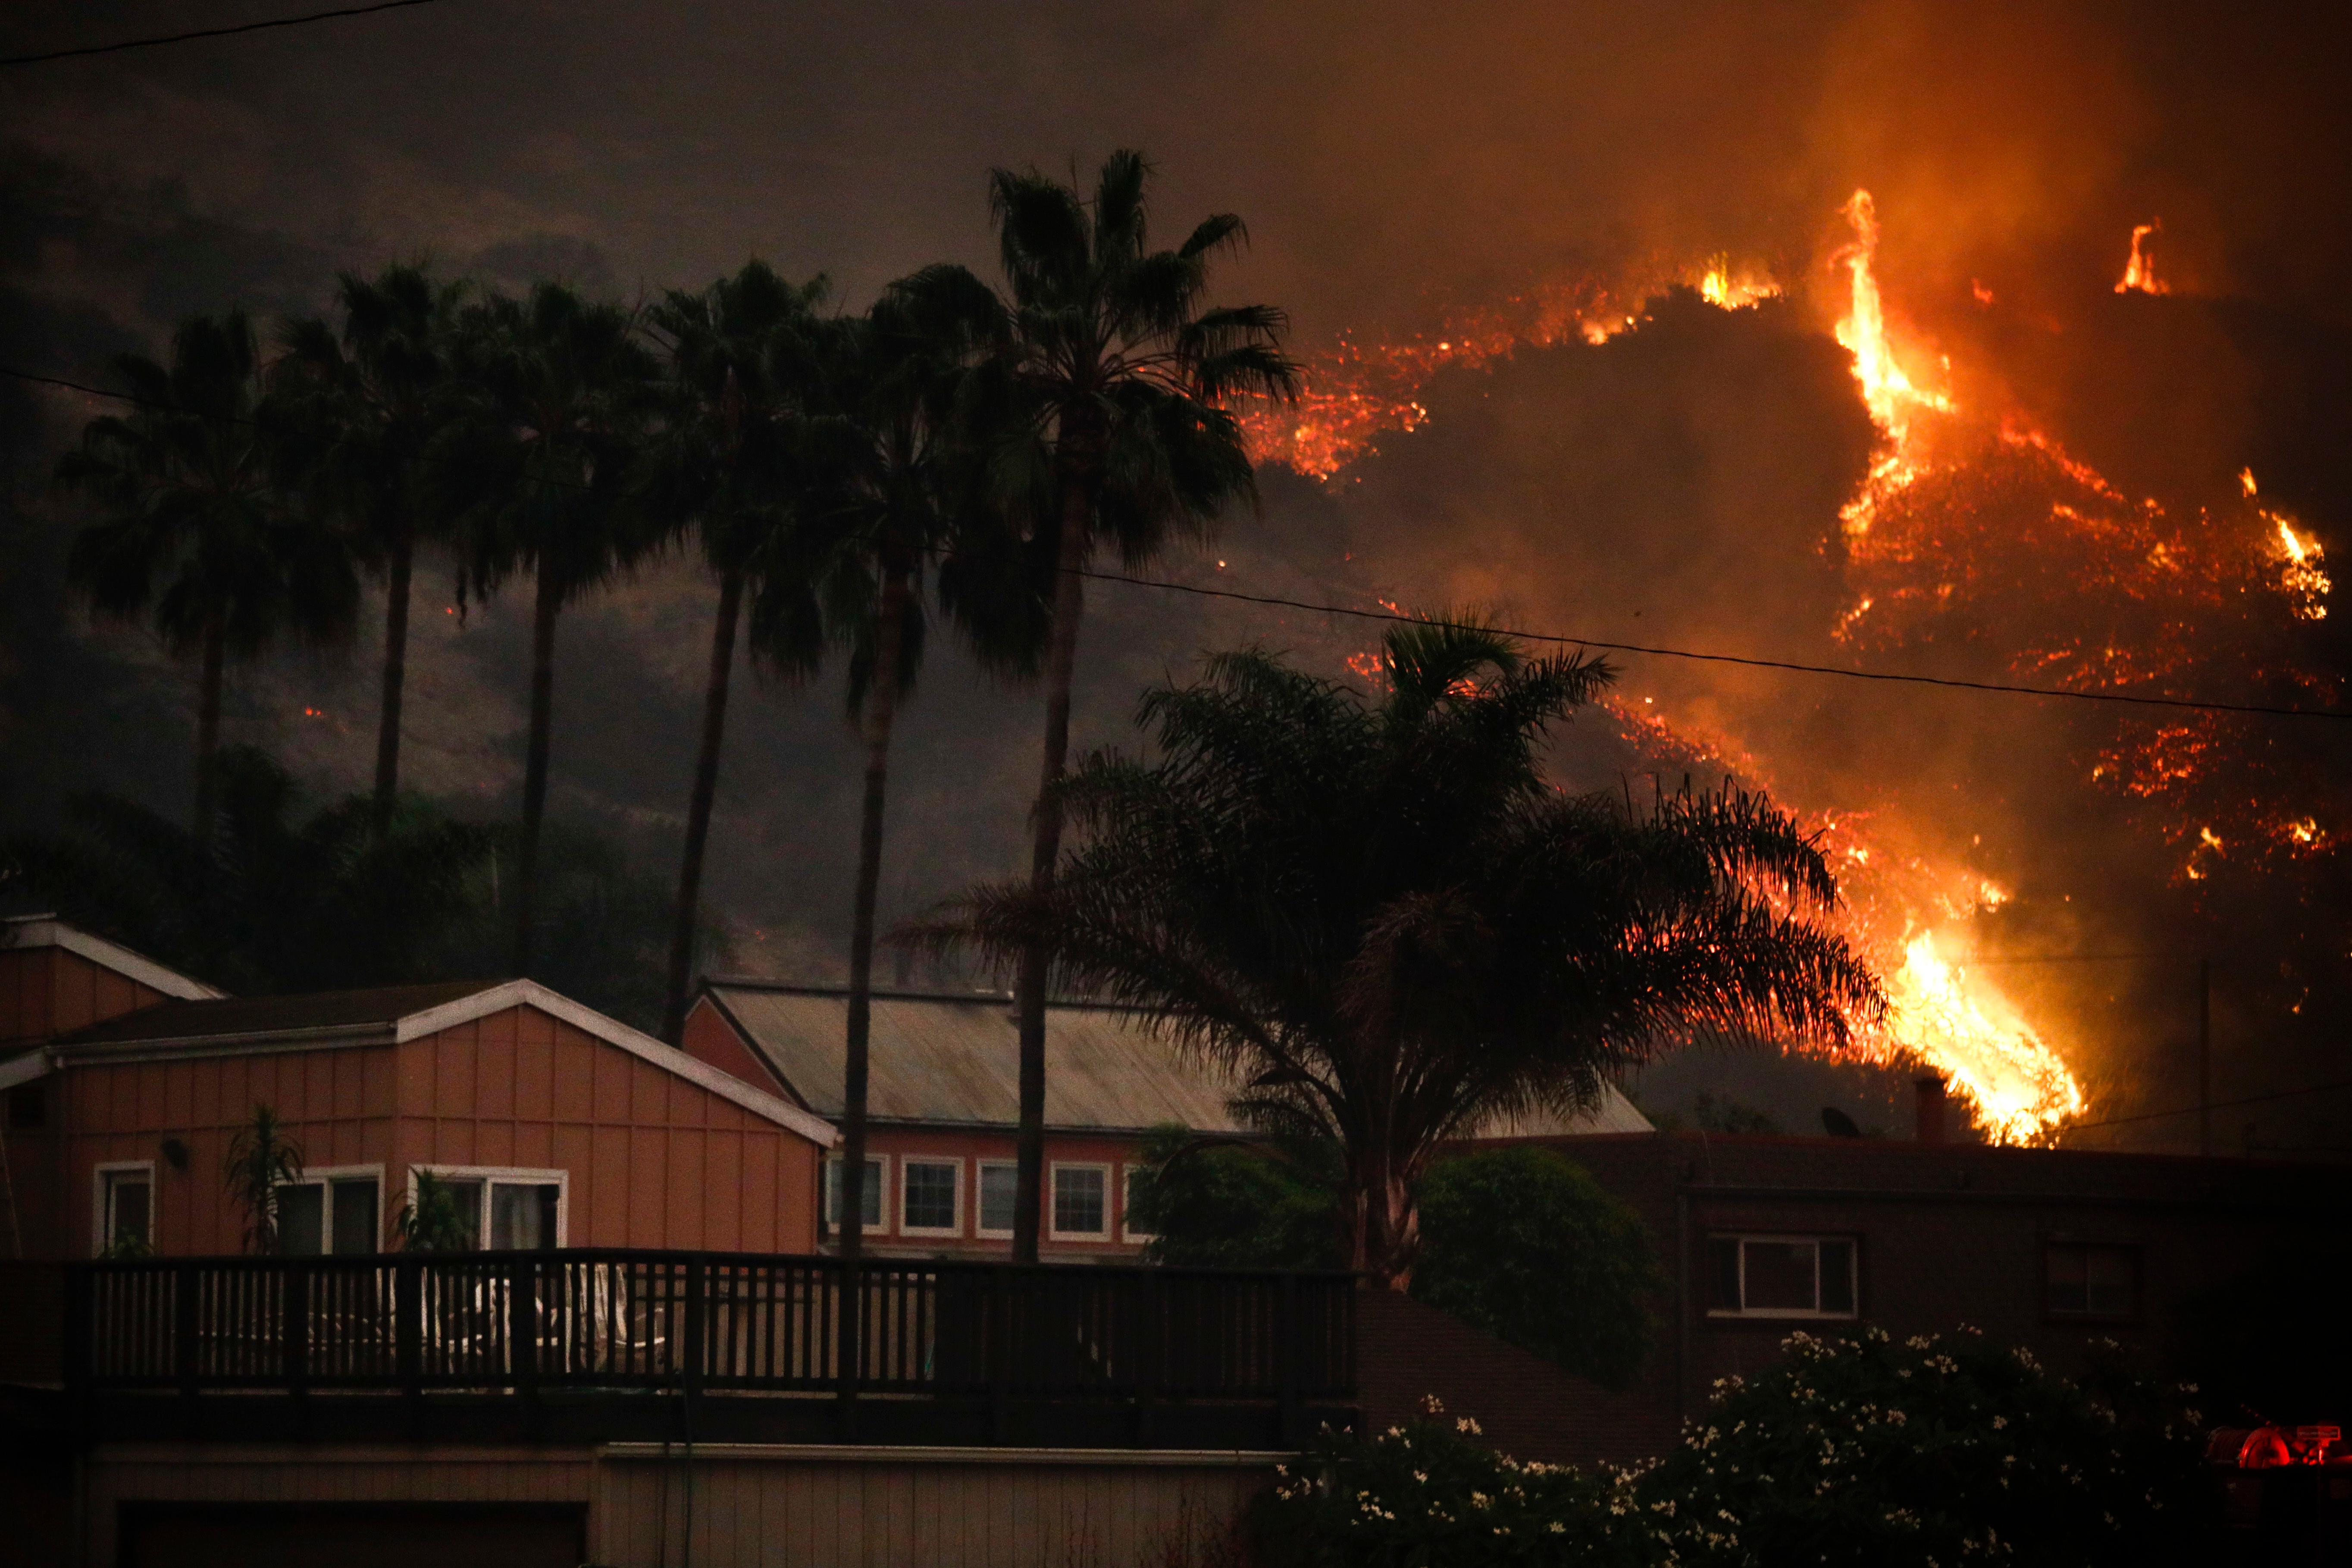 A wildfire threatens homes as it burns along a hillside in La Conchita, Calif., Thursday, Dec. 7, 2017. The wind-swept blazes have forced tens of thousands of evacuations and destroyed dozens of homes. (AP Photo/Jae C. Hong)